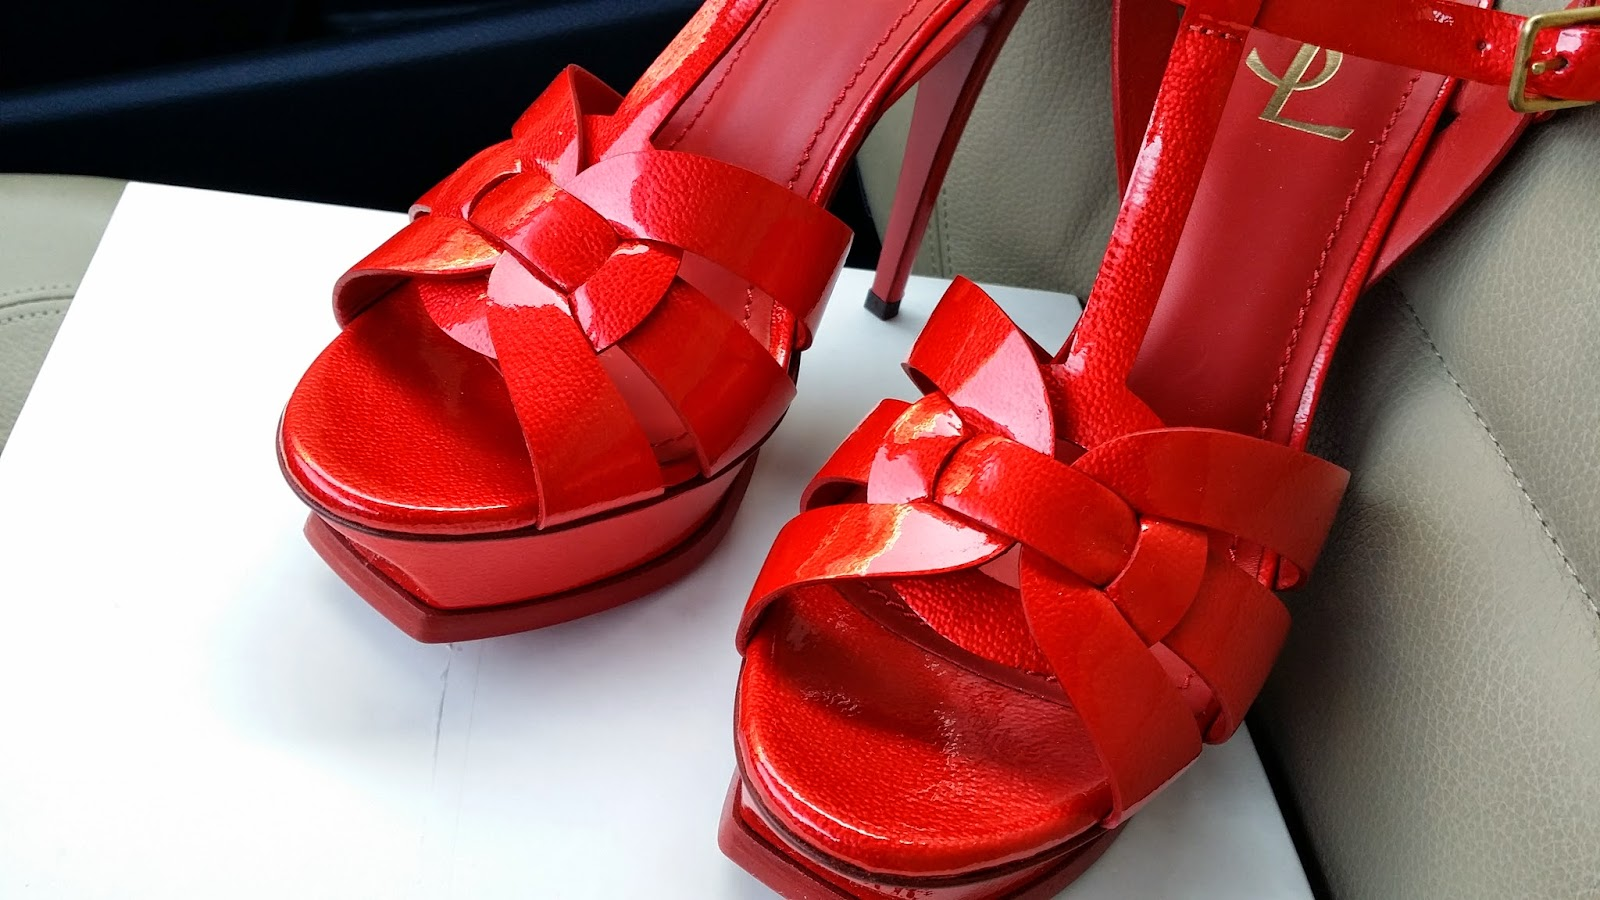 b0bdcec3777 ... fiery red patent leather sandal. The high heeled version of the classic  Tributes also contribute to the